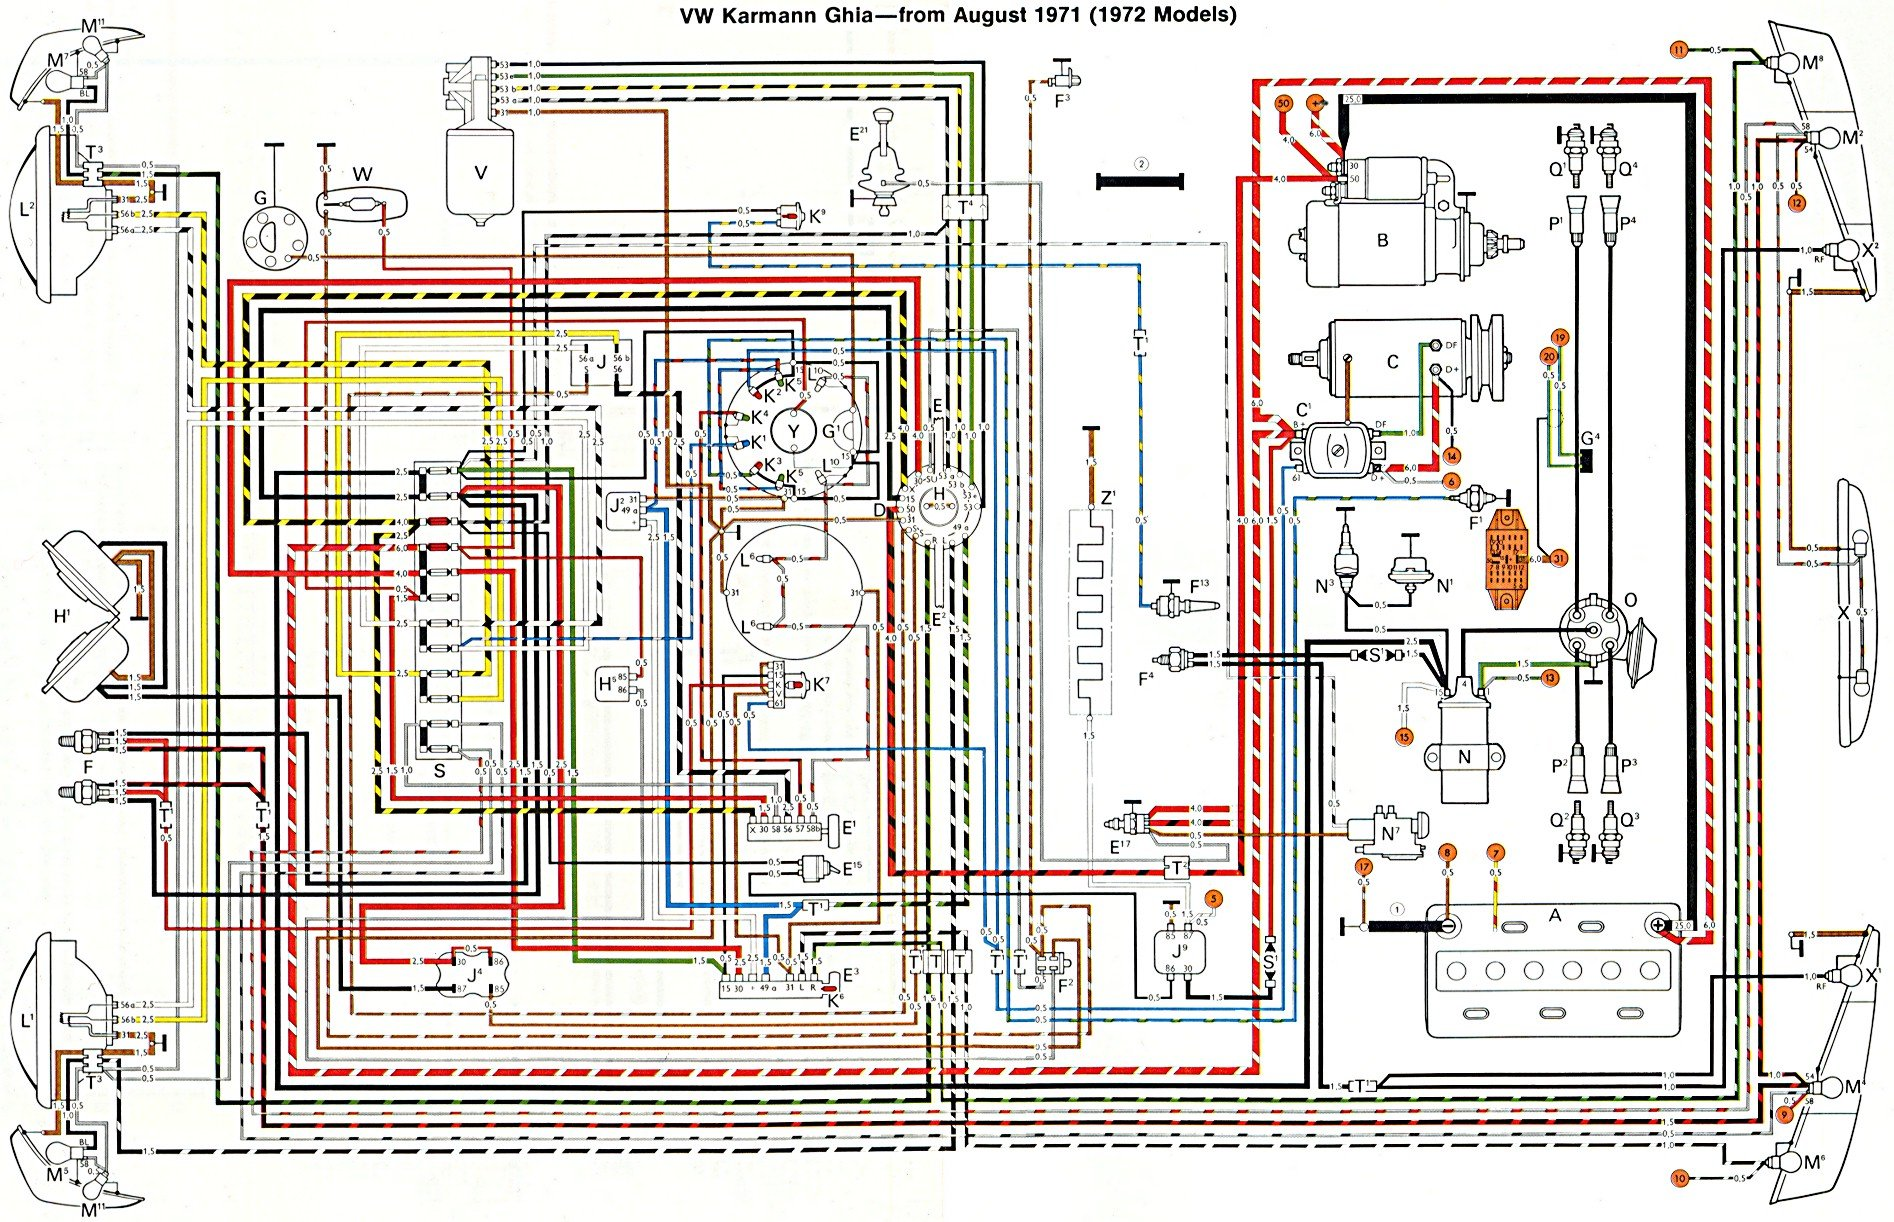 TheSamba.com :: Karmann Ghia Wiring Diagrams on eurovan wiring diagram, type 181 wiring diagram, volvo wiring diagram, audi wiring diagram, van wiring diagram, mitsubishi wiring diagram, corvette wiring diagram, dodge wiring diagram, type 3 wiring diagram, bug wiring diagram, chrysler wiring diagram, vw wiring diagram, chevrolet wiring diagram, jeep wiring diagram, toyota wiring diagram, acura wiring diagram, mgb wiring diagram, lincoln wiring diagram, mustang wiring diagram, austin healey wiring diagram,